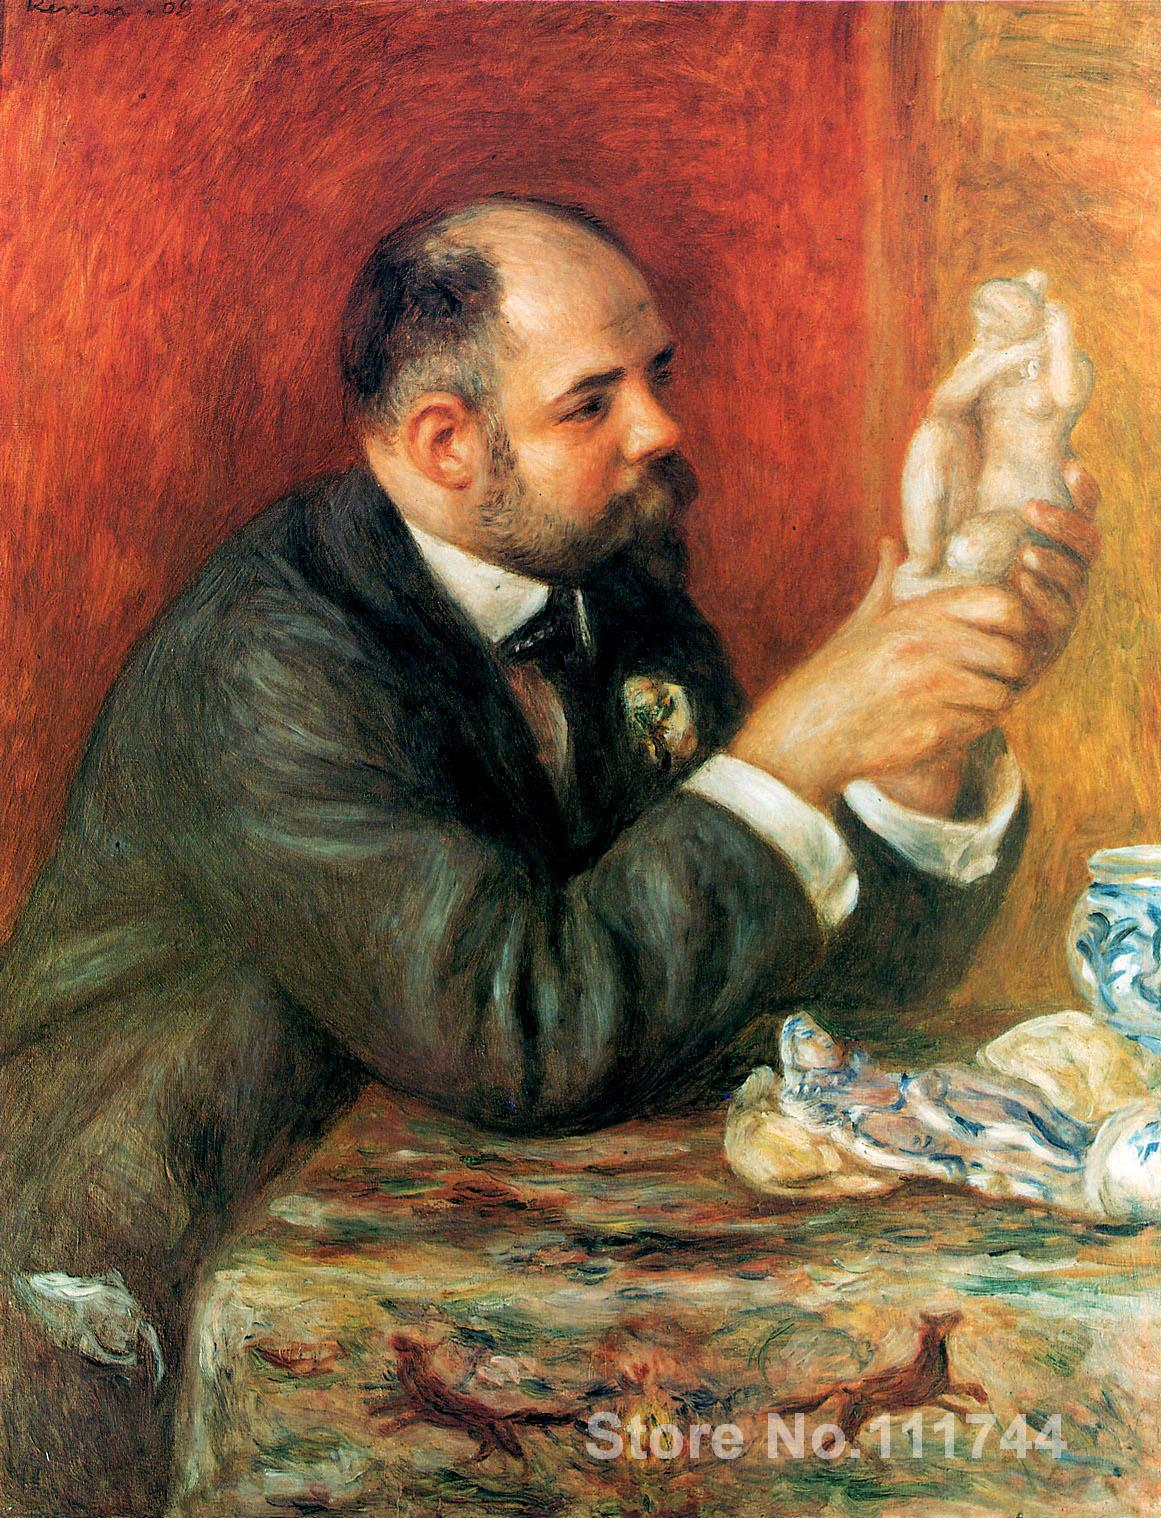 Impressionist art for sale Ambroise Vollard Pierre Auguste Renoir painting Handmade High qualityImpressionist art for sale Ambroise Vollard Pierre Auguste Renoir painting Handmade High quality